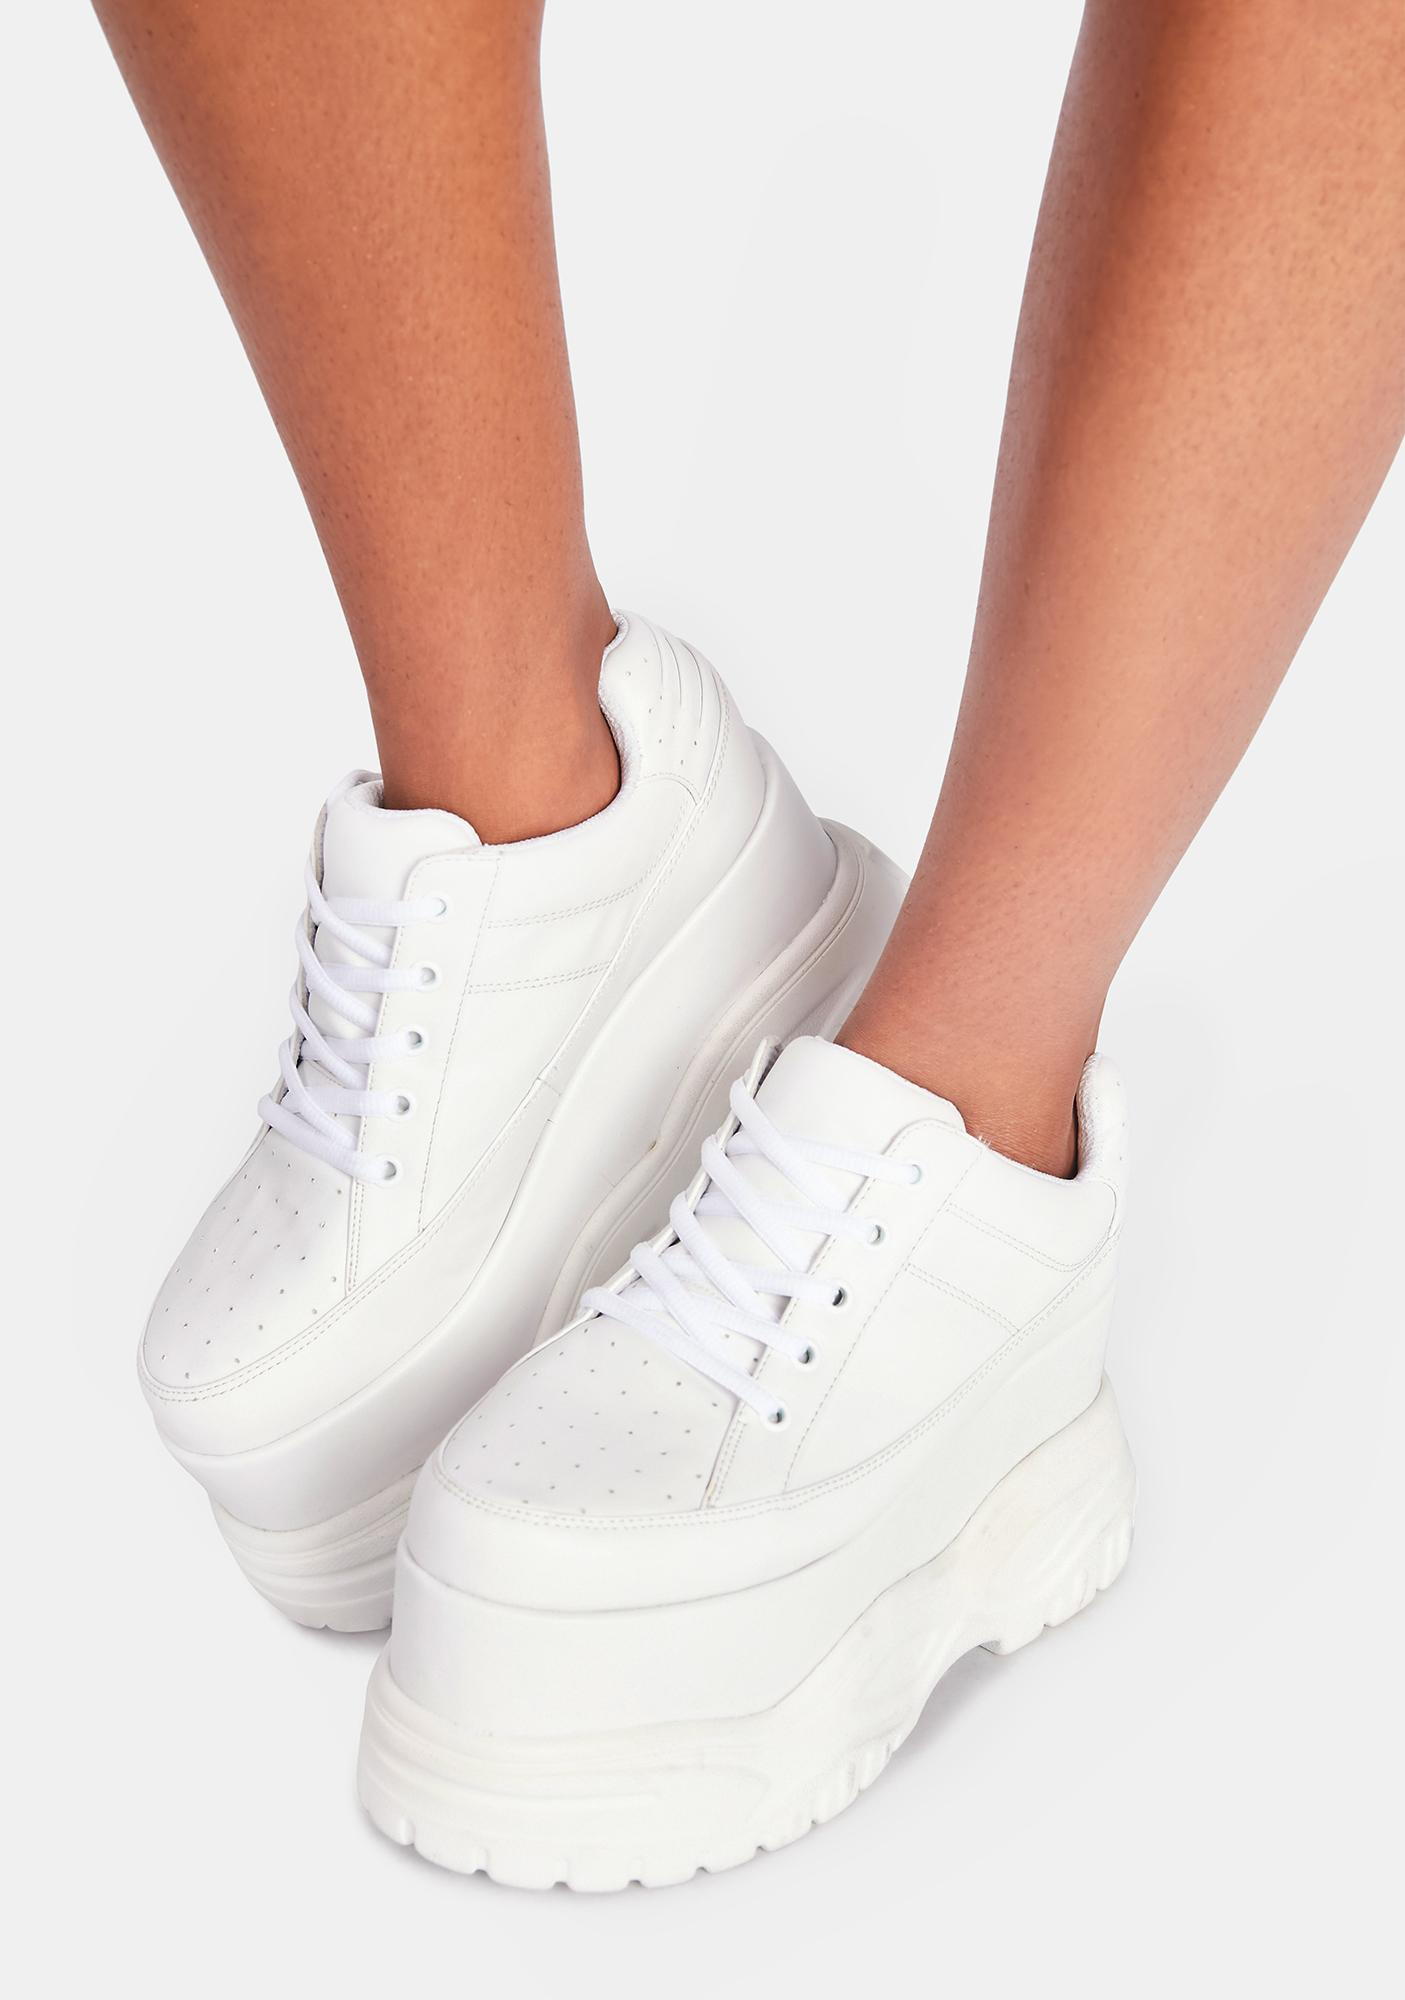 Poster Grl Pay The Bills Platform Sneakers